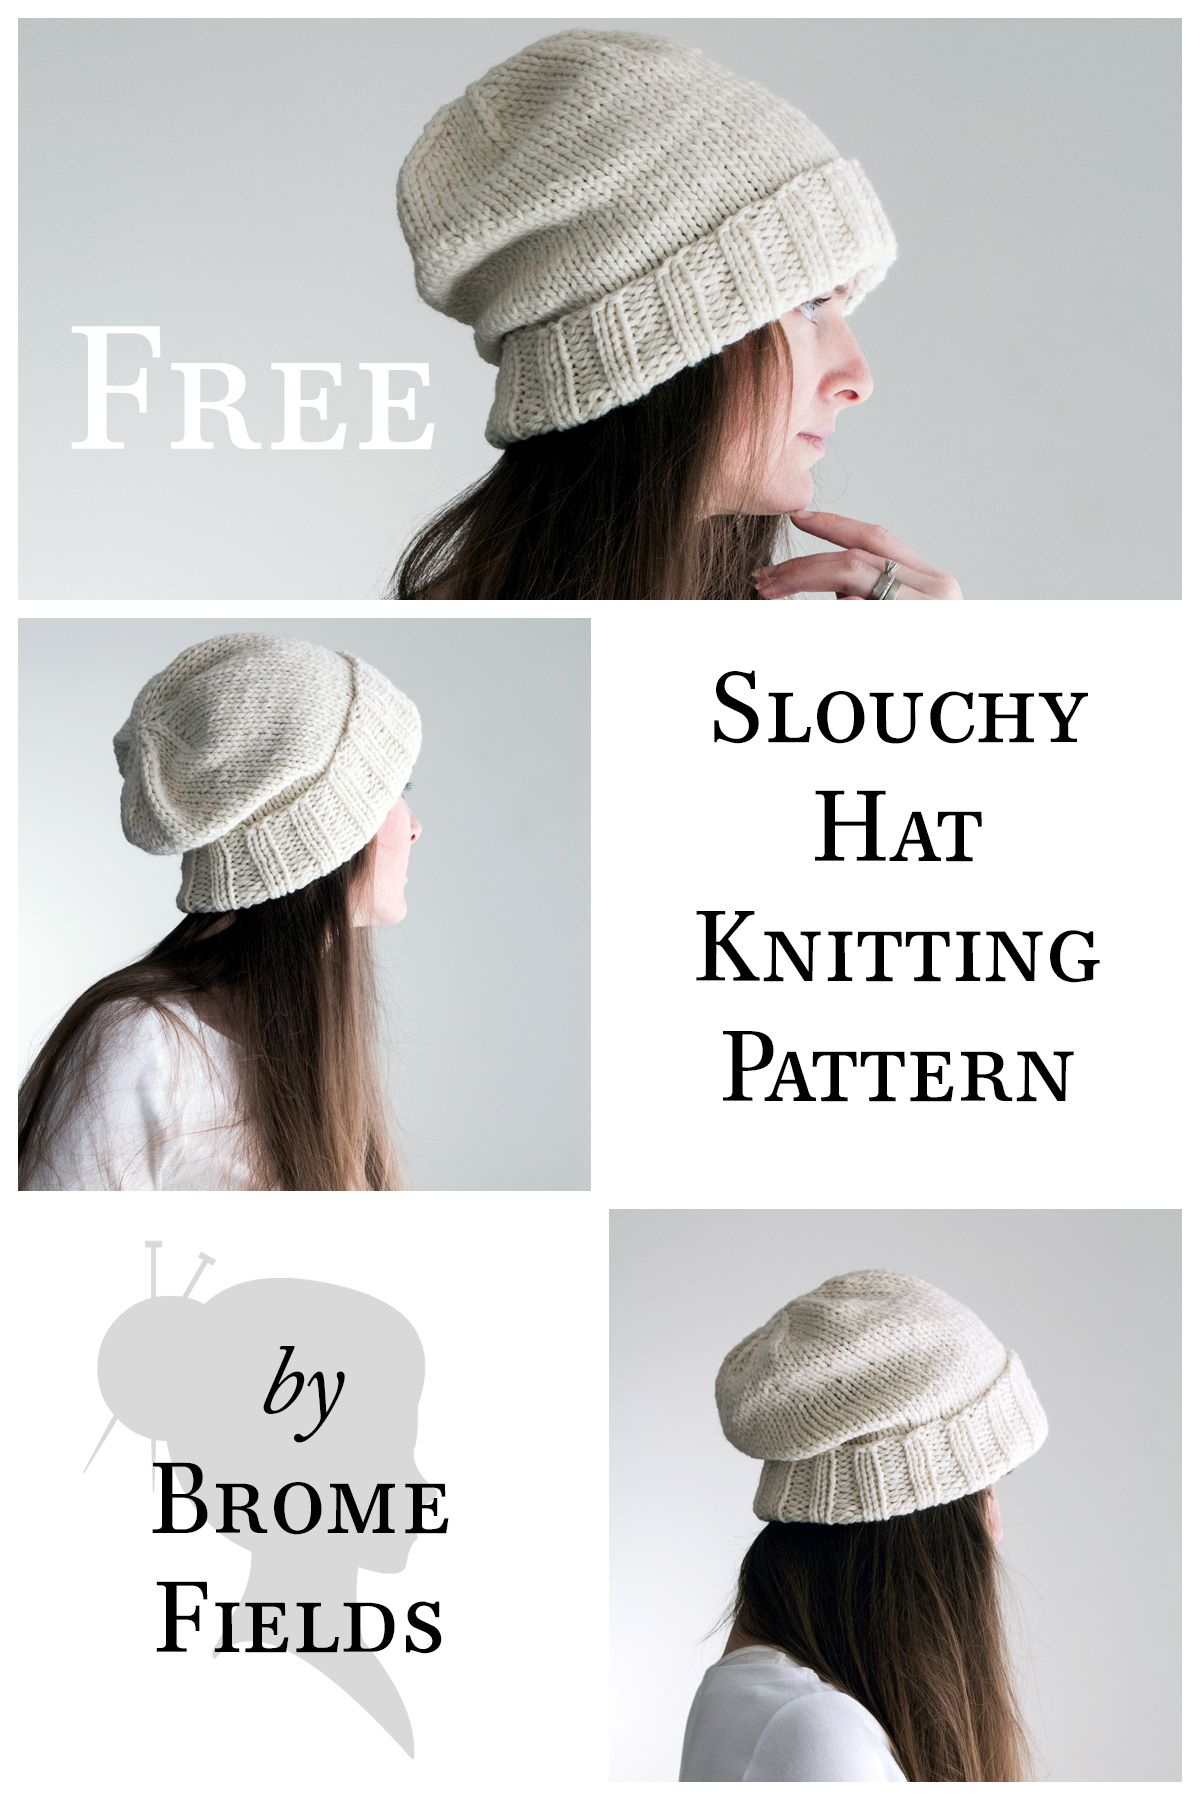 FREE Slouchy Hat Knitting Pattern by Brome Fields. | Knitting ...